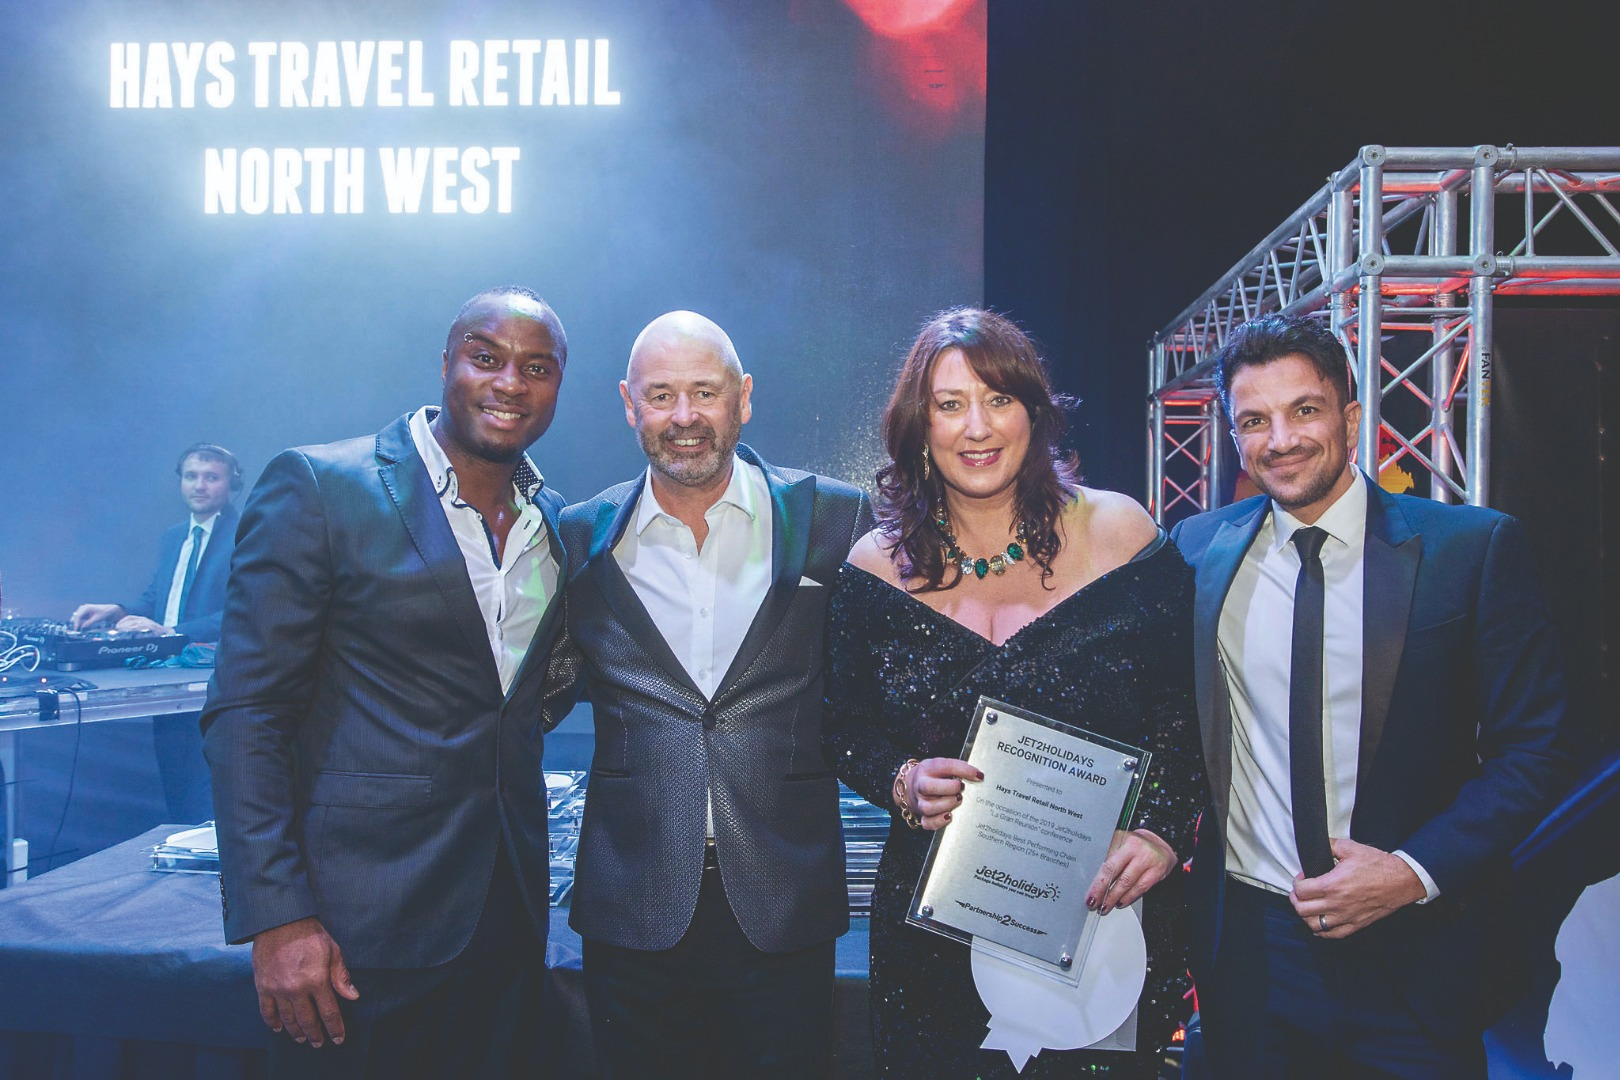 Horwich travel bosses party with Peter Andre